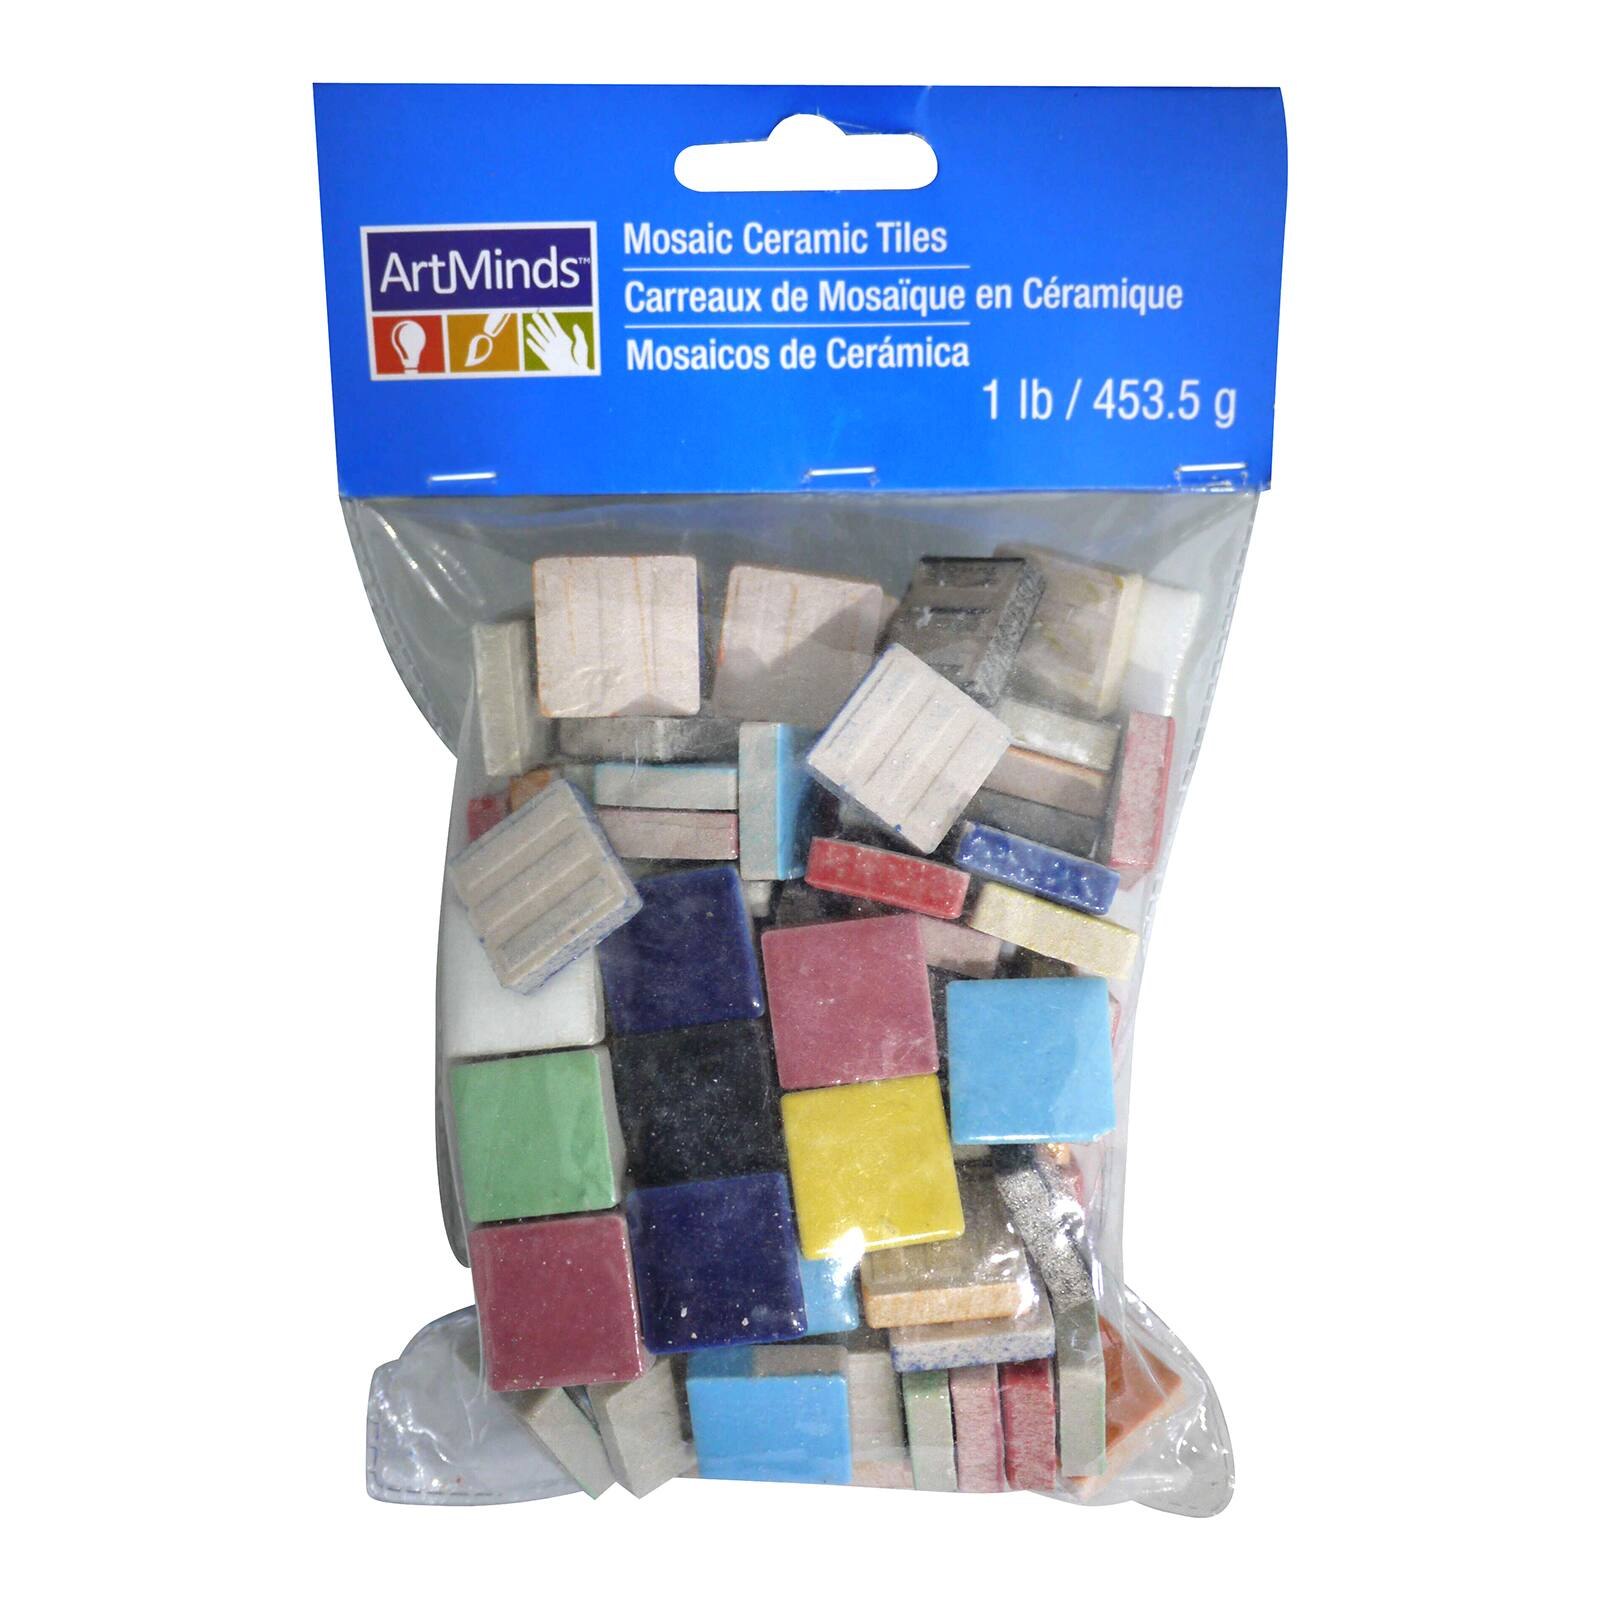 assorted mosaic ceramic tiles by artminds